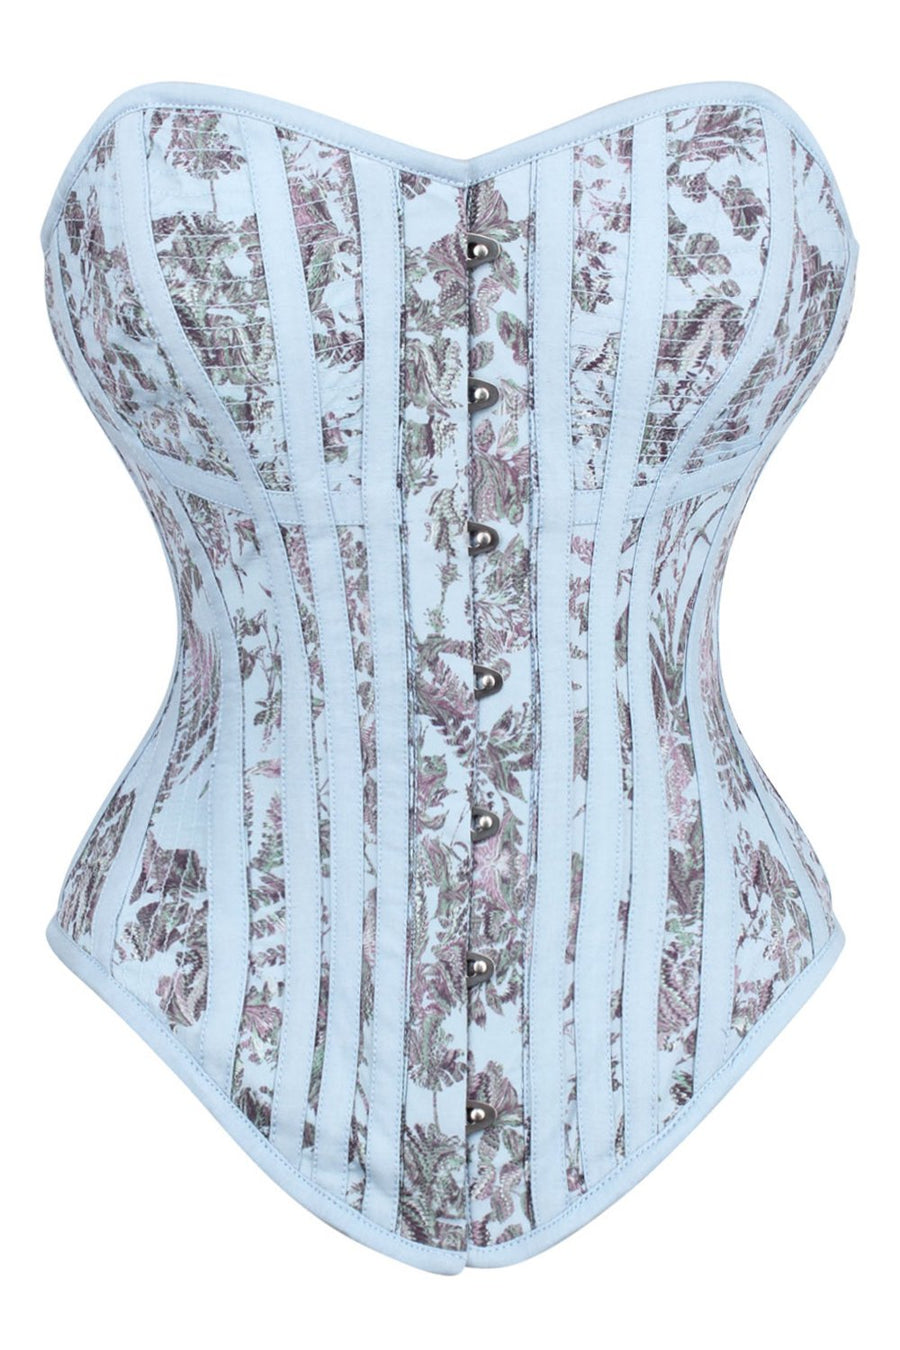 Historically Inspired 1800-1850 Overbust Corset